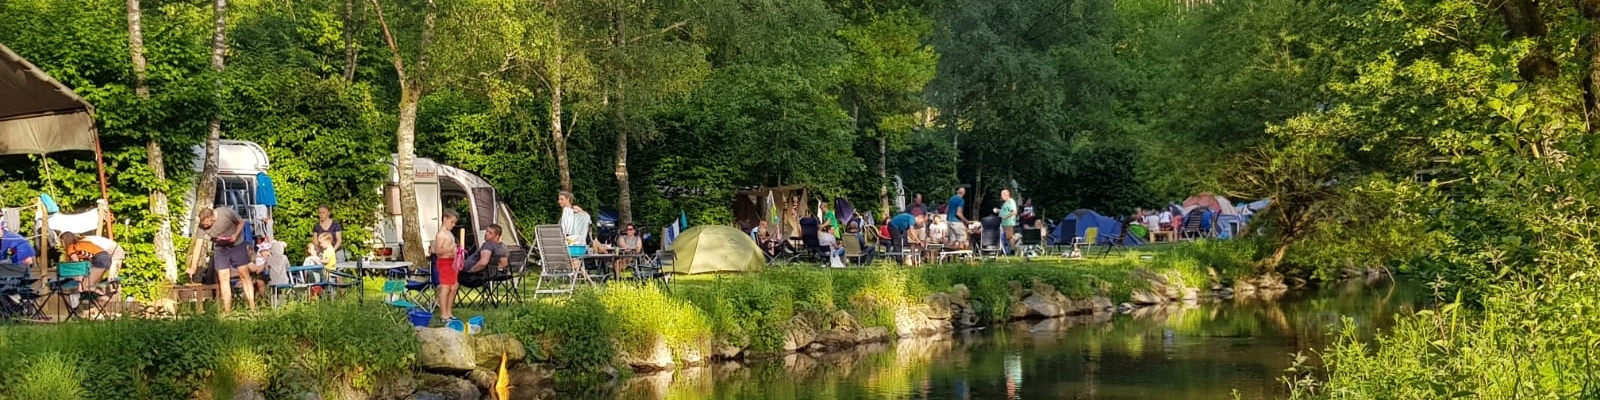 Camping C&P Buitensport